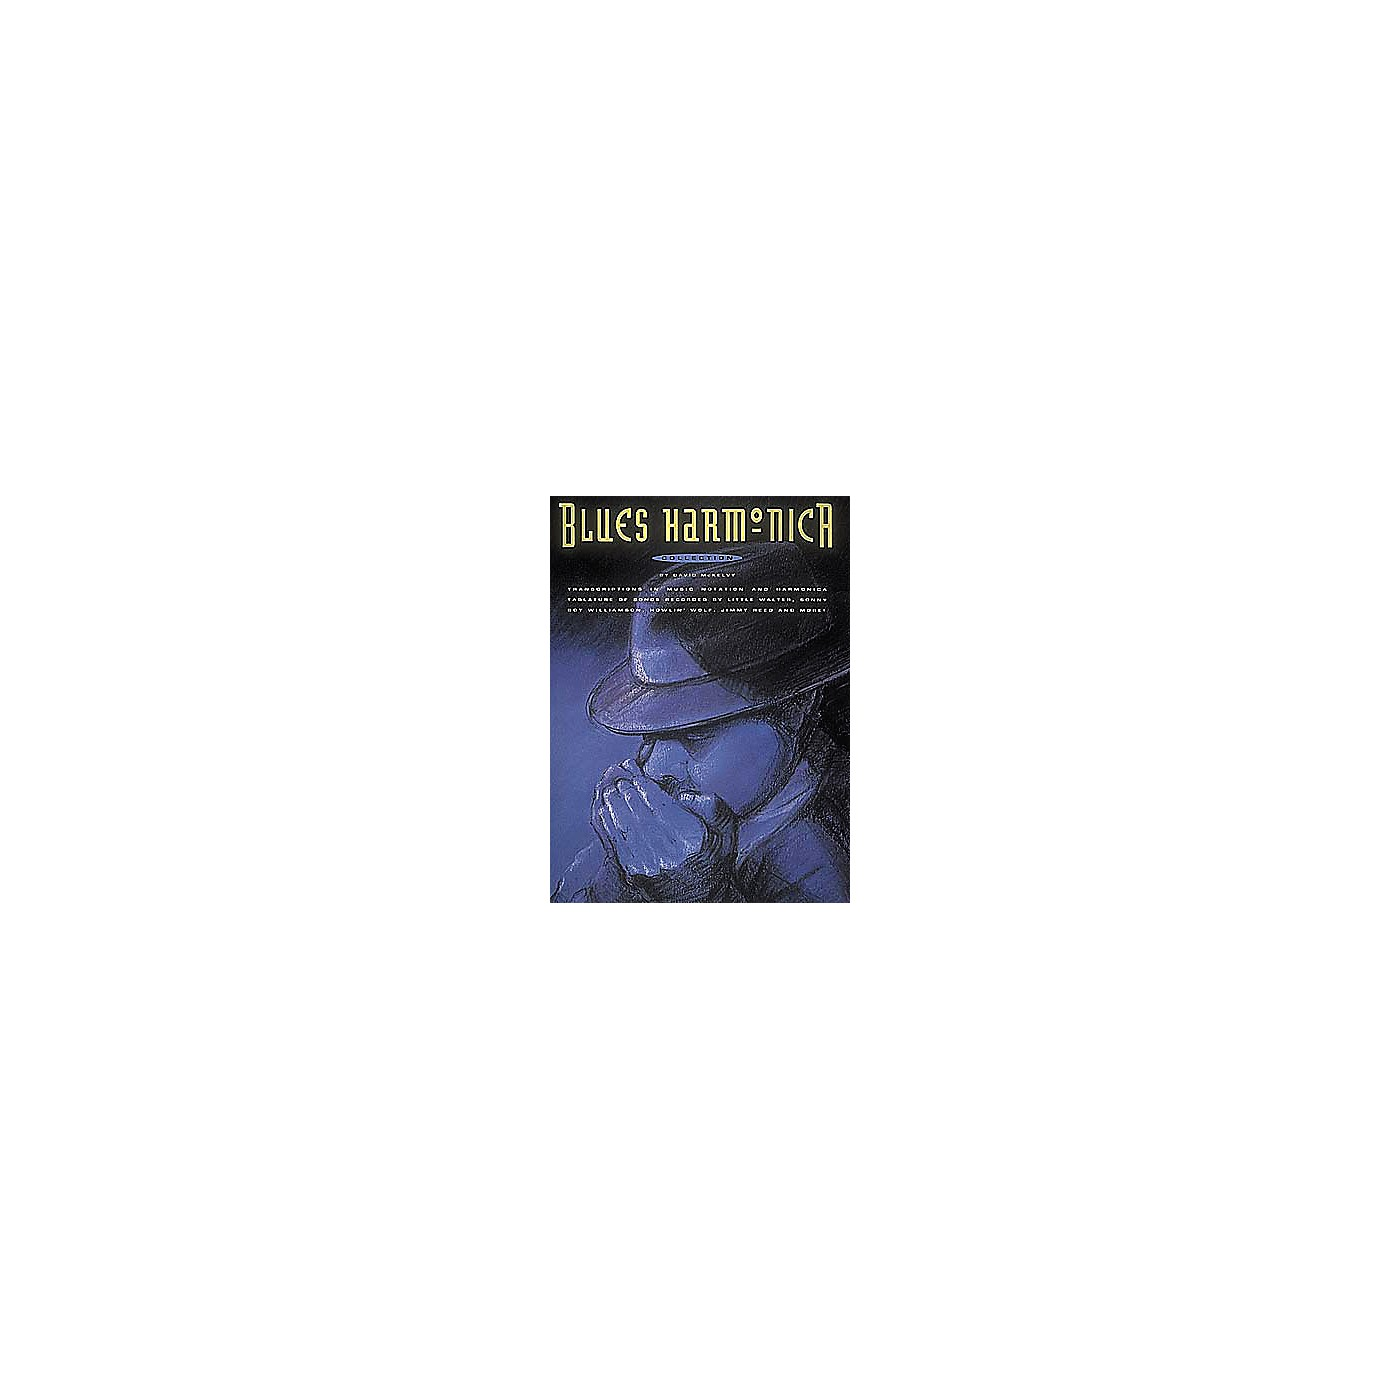 Hal Leonard Blues Harmonica Collection Songbook thumbnail